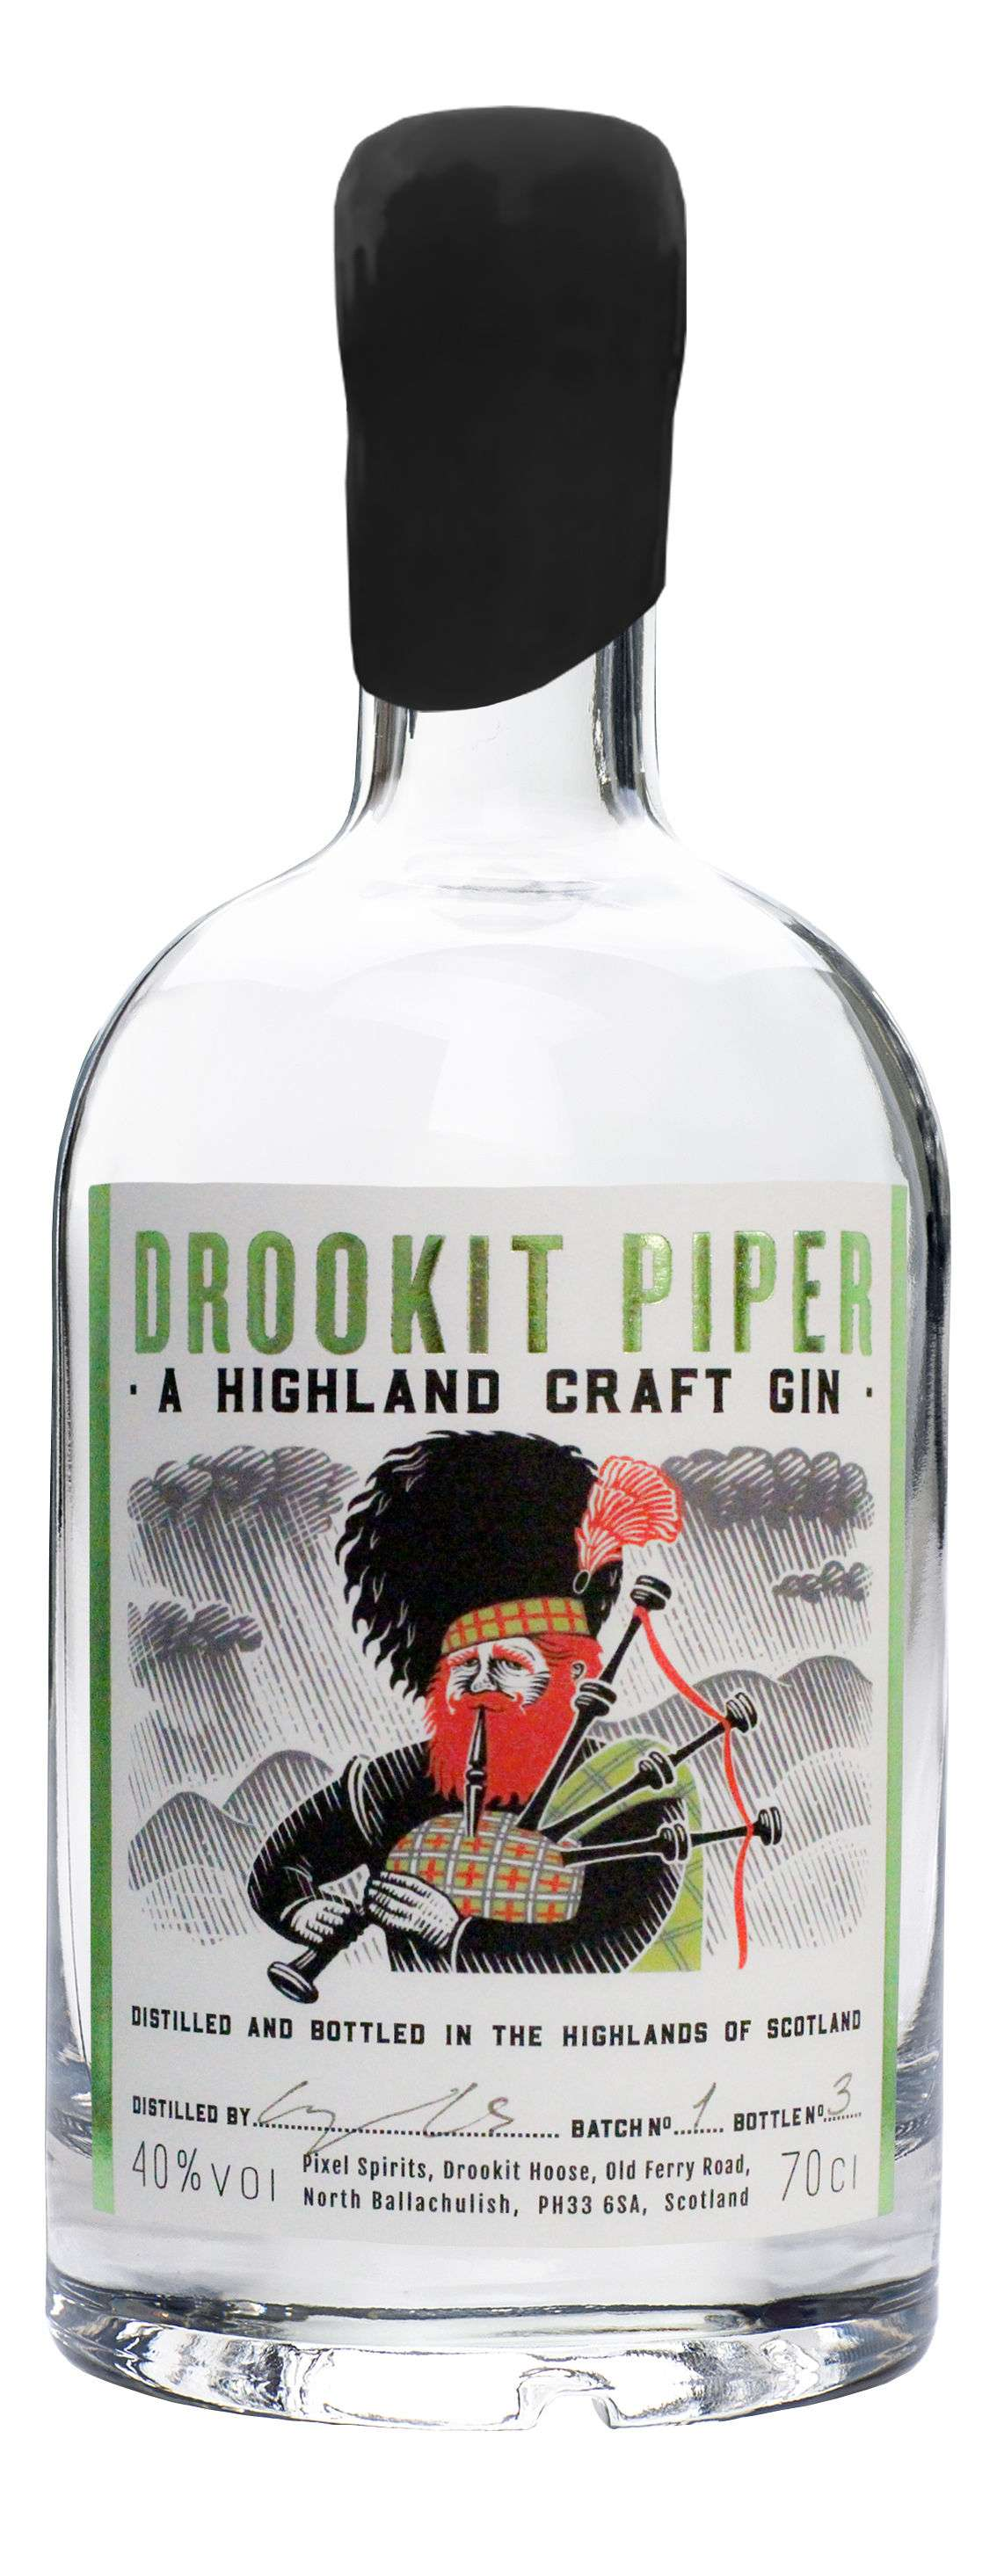 Drookit Piper Gin Gins & Gin Liqueurs